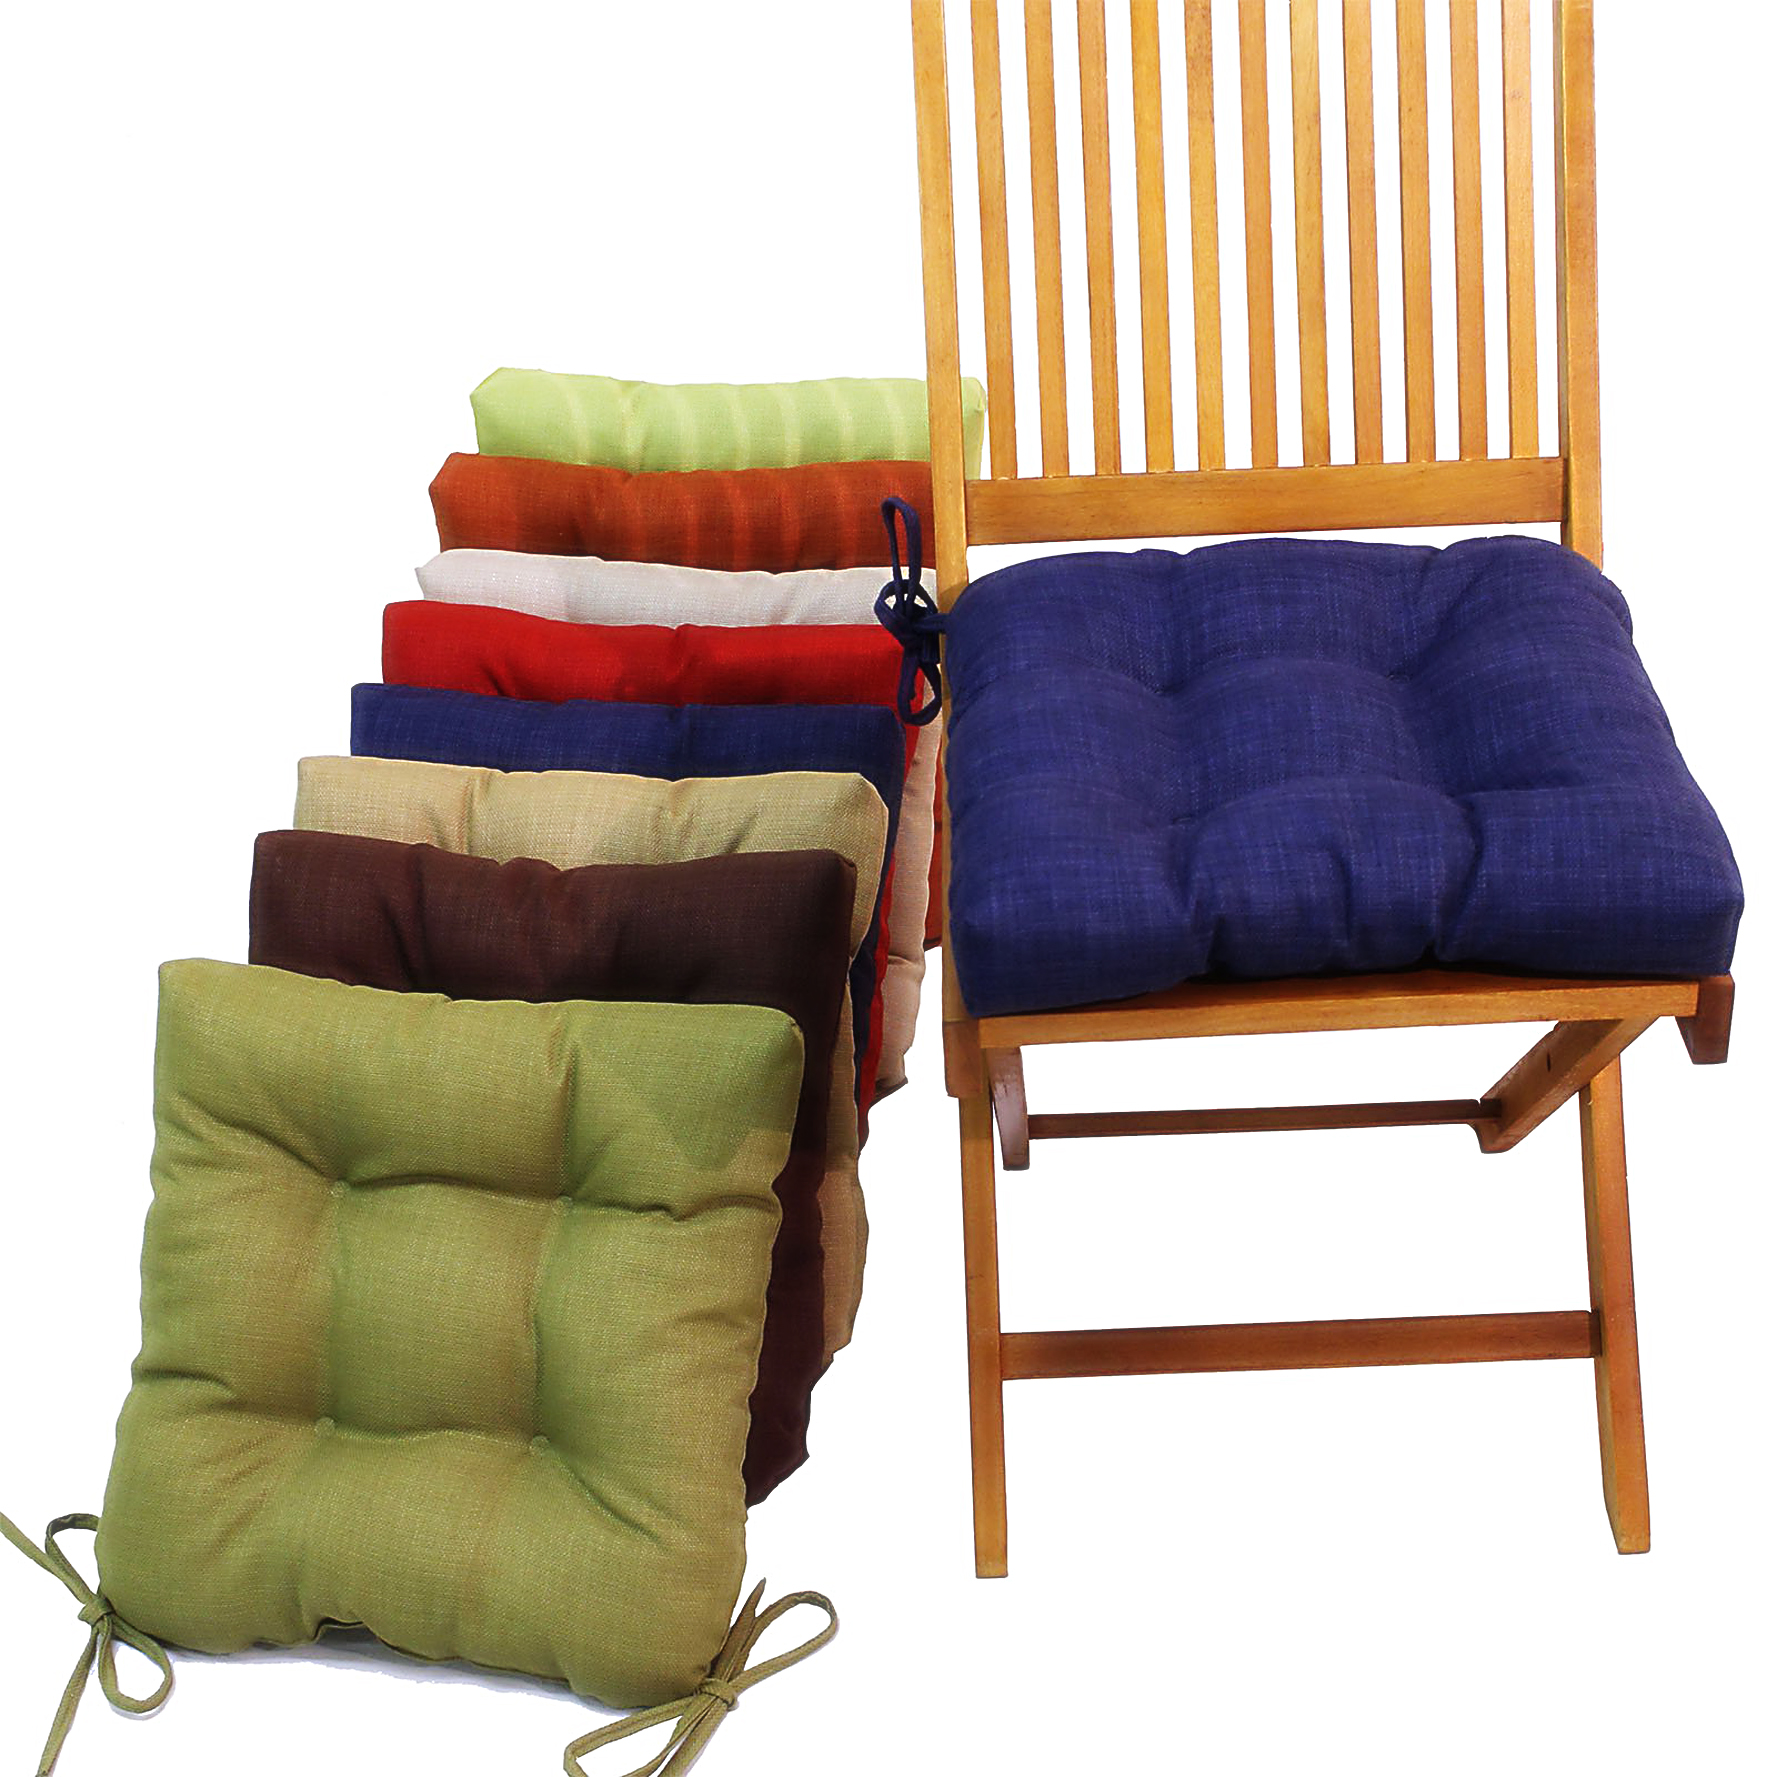 kitchen chairs cushions photo - 6